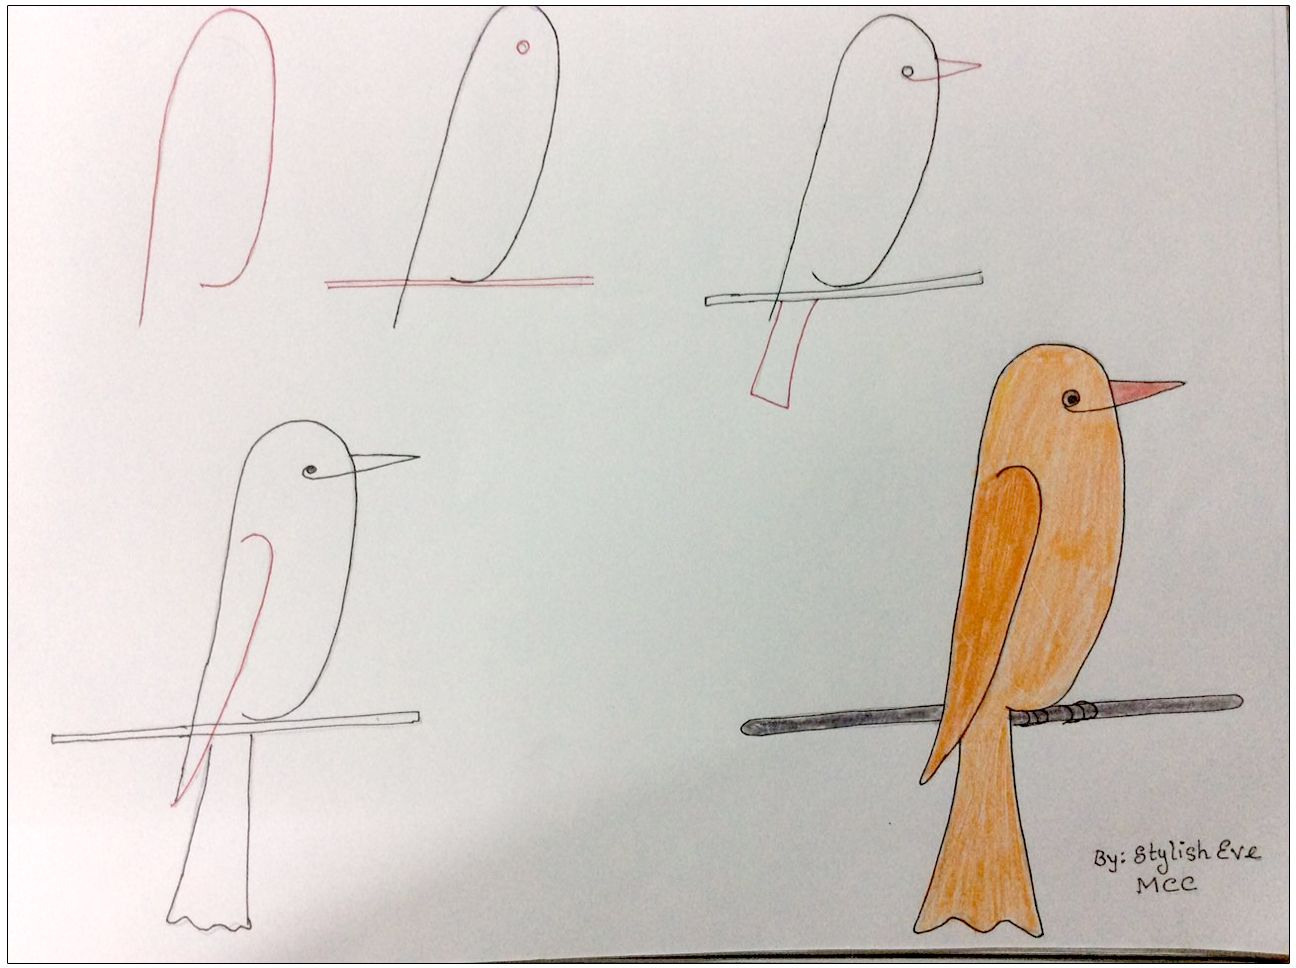 1296x968 Bird On Stick Kid Friendly Drawings And Crafts